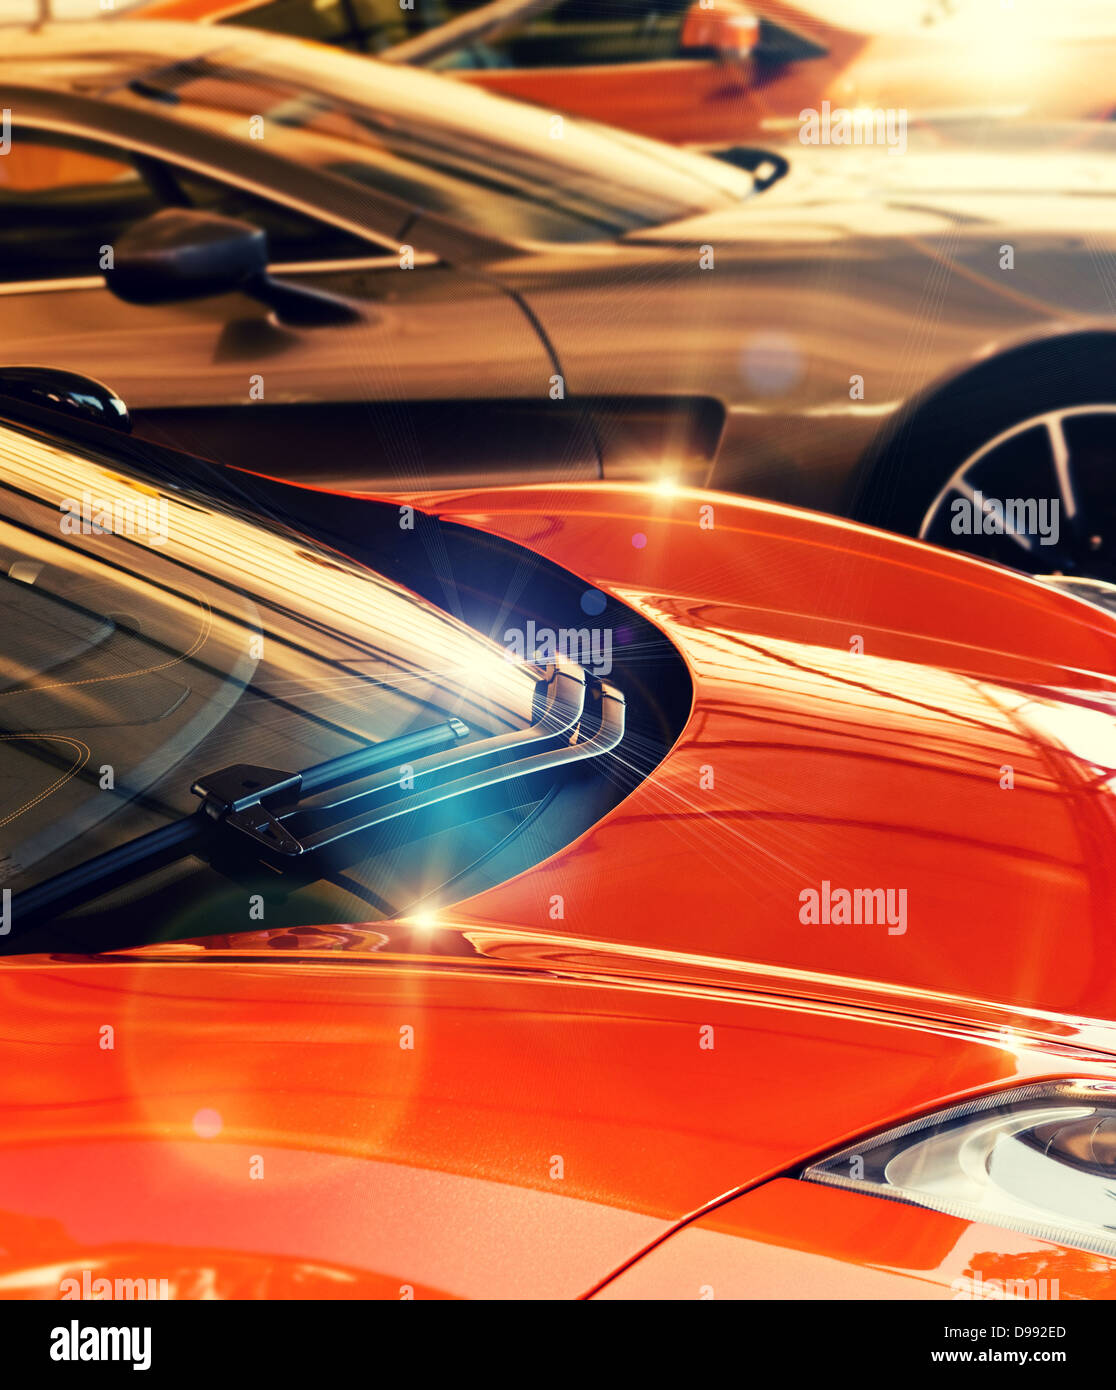 gleaming cars - Stock Image